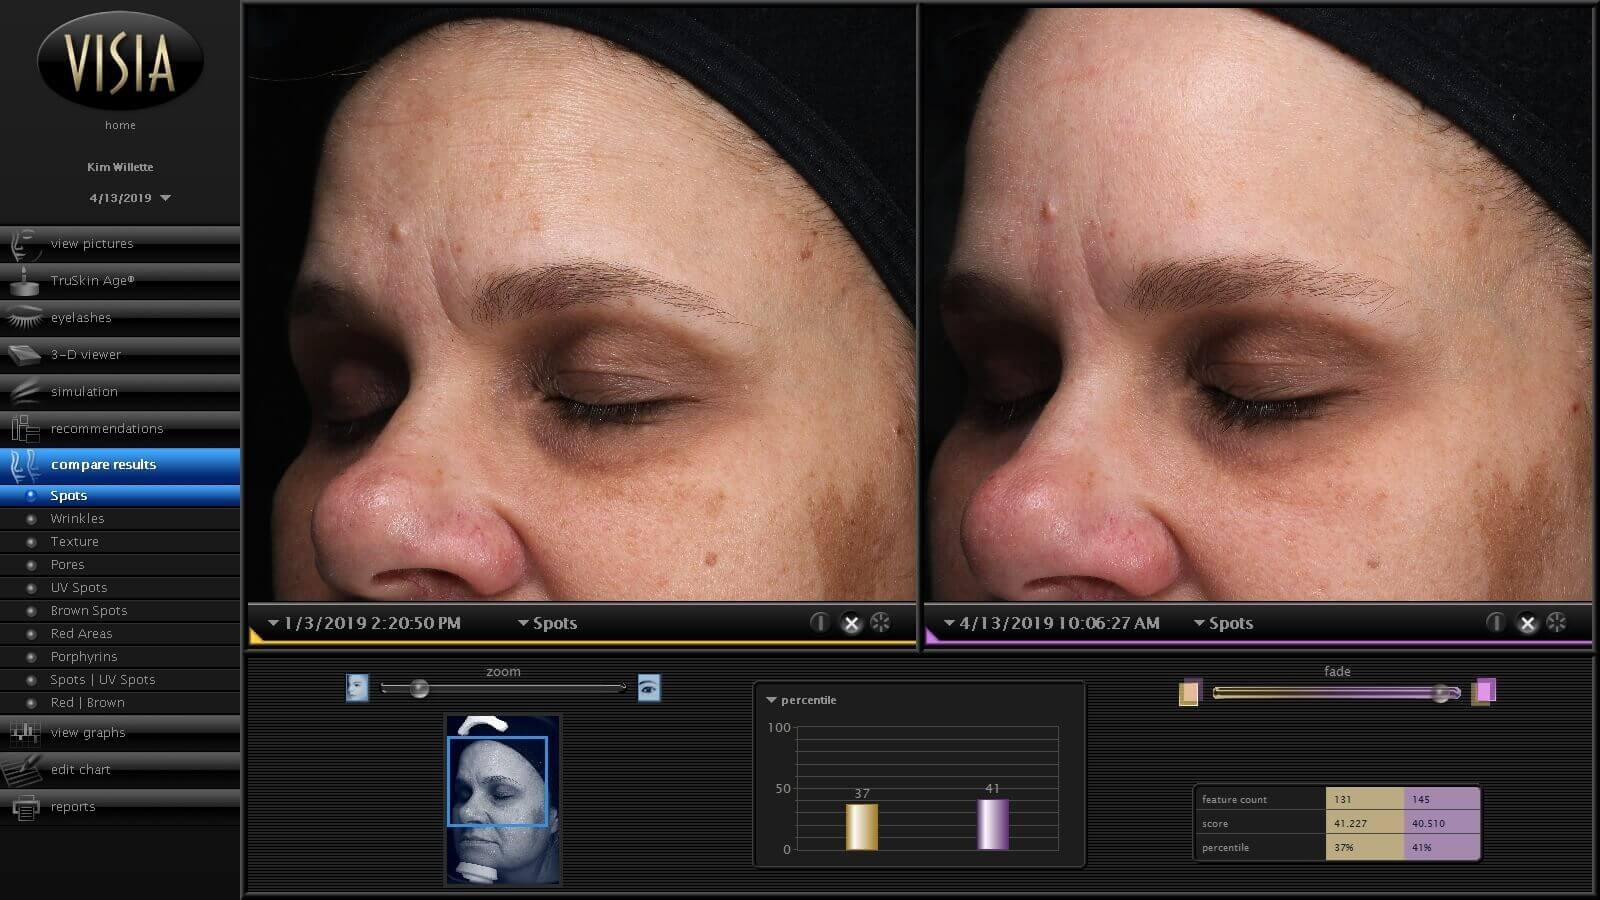 Skin Improved w/ HydraFacial Before & After